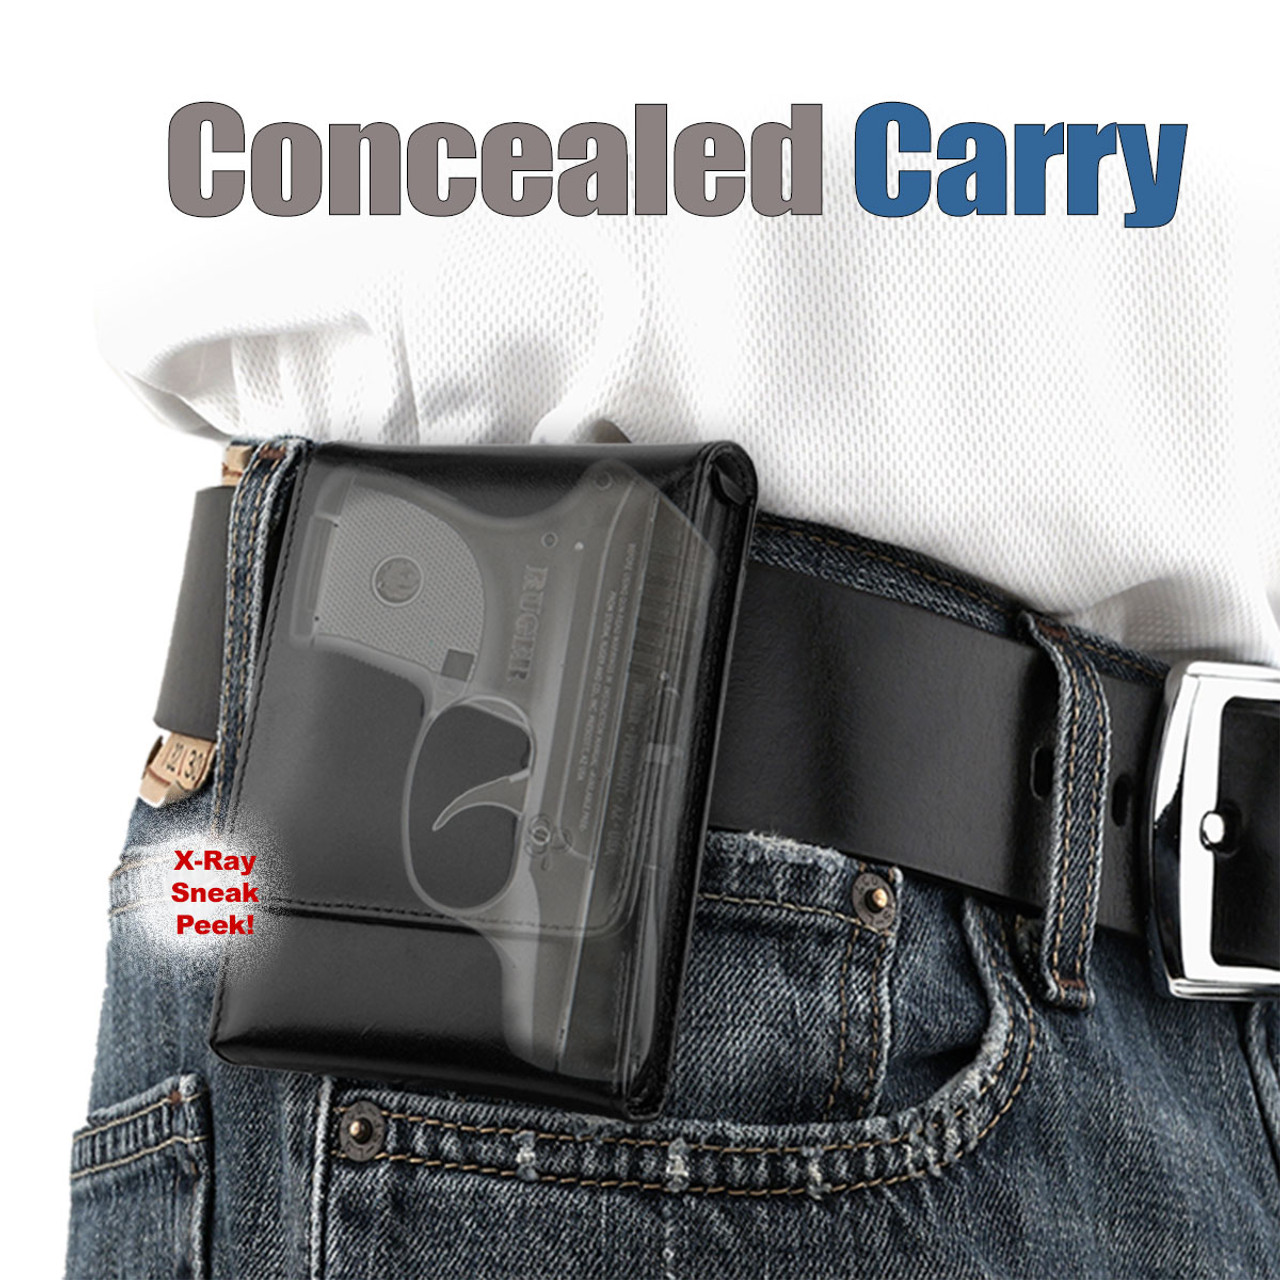 Kahr P40 Concealed Carry Holster (Belt Loop)